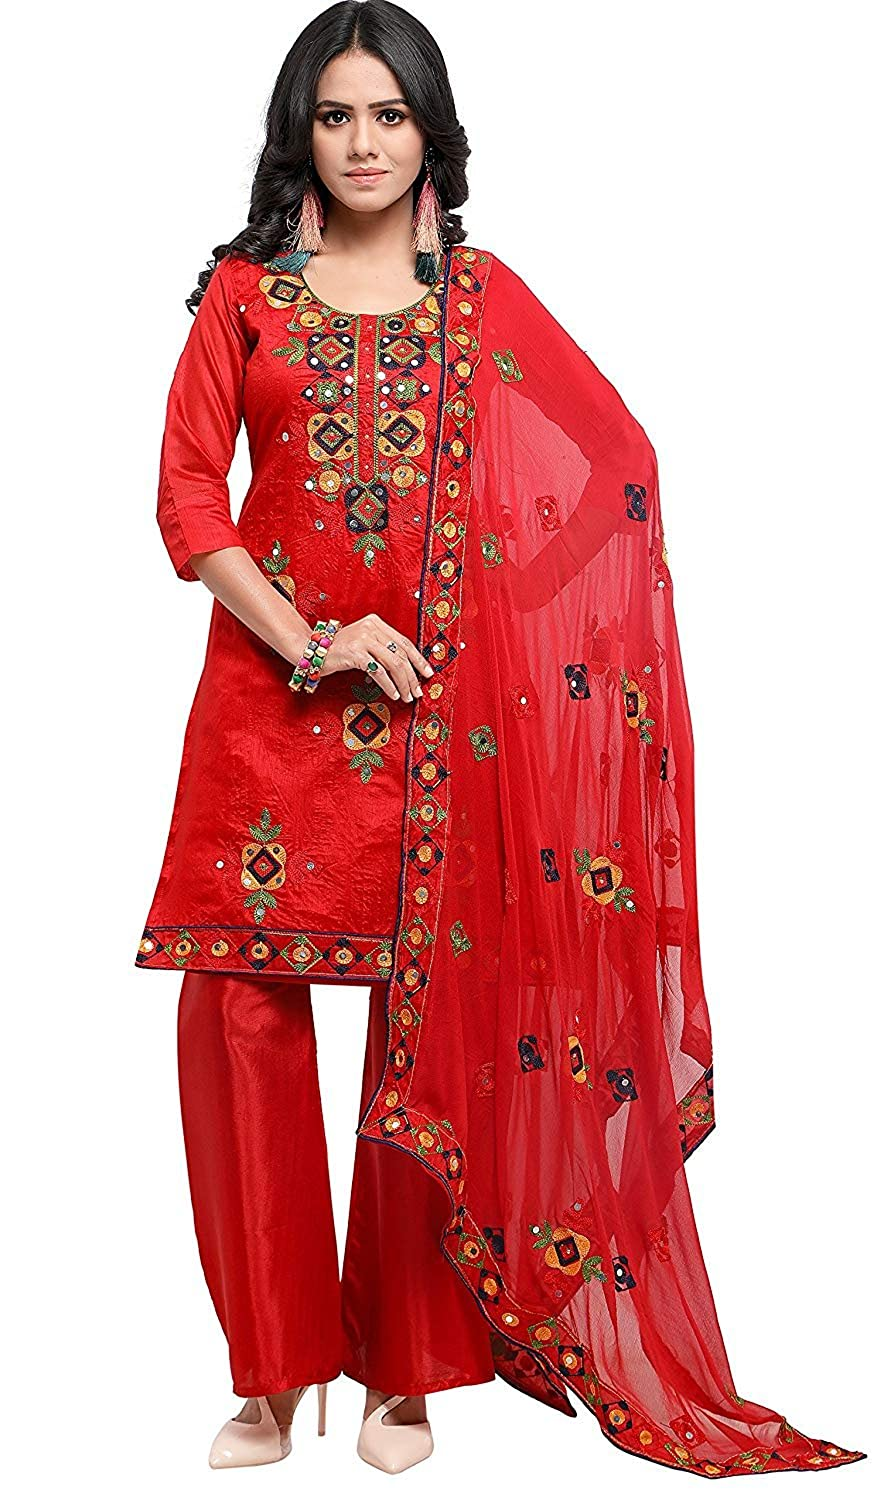 576b77d0a8 Social Star Digital Cotton Holi Special Rajasthani Mirror Work Chanderi  Embroidery Unstitched Salwar Kameez Dress Material Free Size {Red}:  Amazon.in: ...